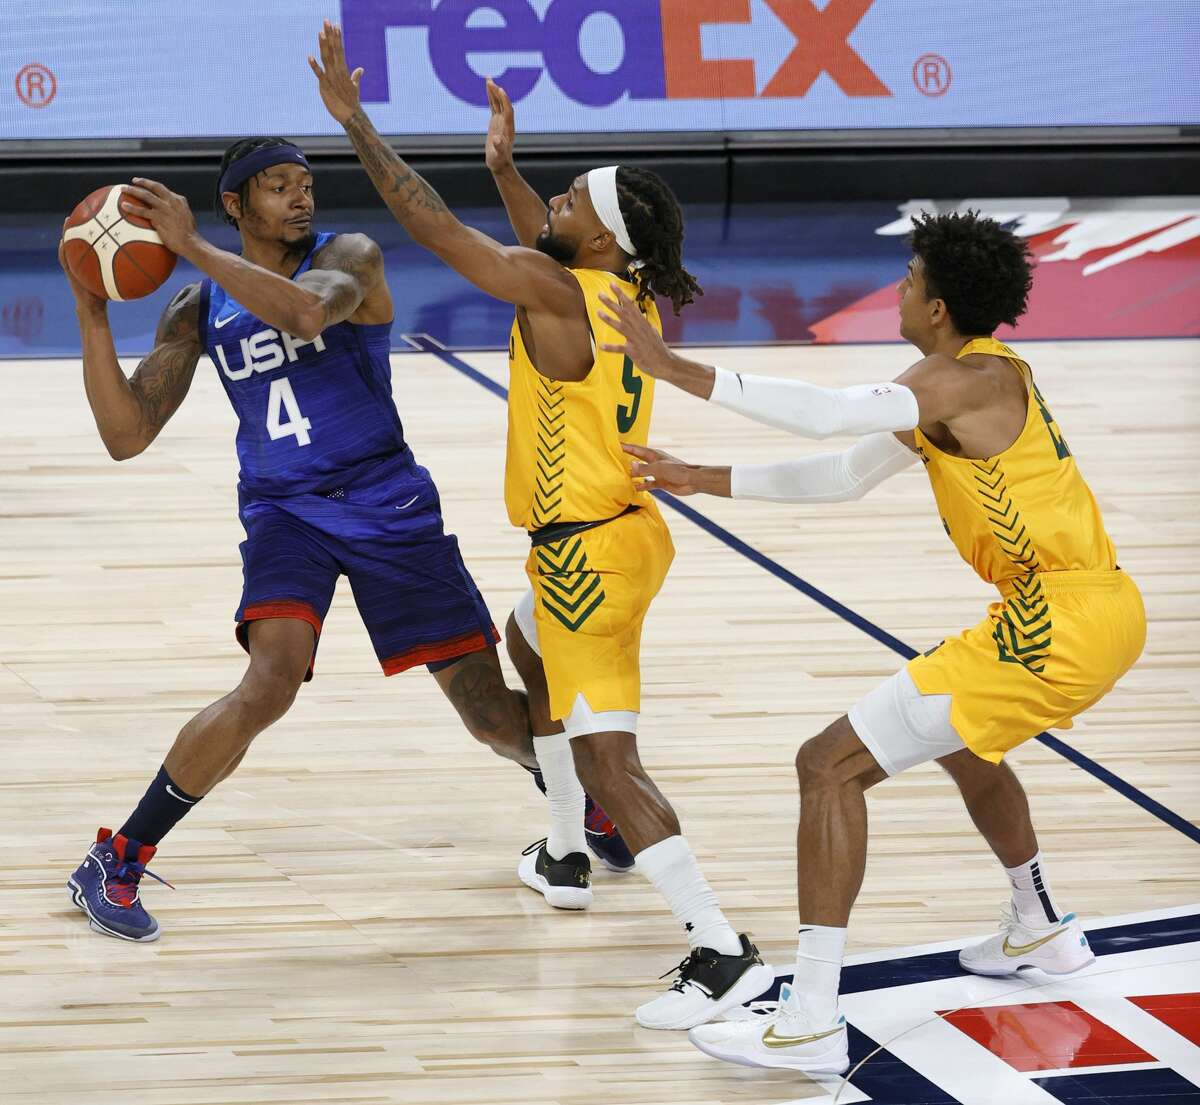 Patty Mills went up against Team USA, led by his NBA coach Gregg Popovich, in Las Vegas in a precursor game to the Tokyo Olympics. The Australians beat Team USA 91-83, handing them them a back-to-back loss. Team USA also lost to Nigeria in a rare 90-87 loss on Saturday.